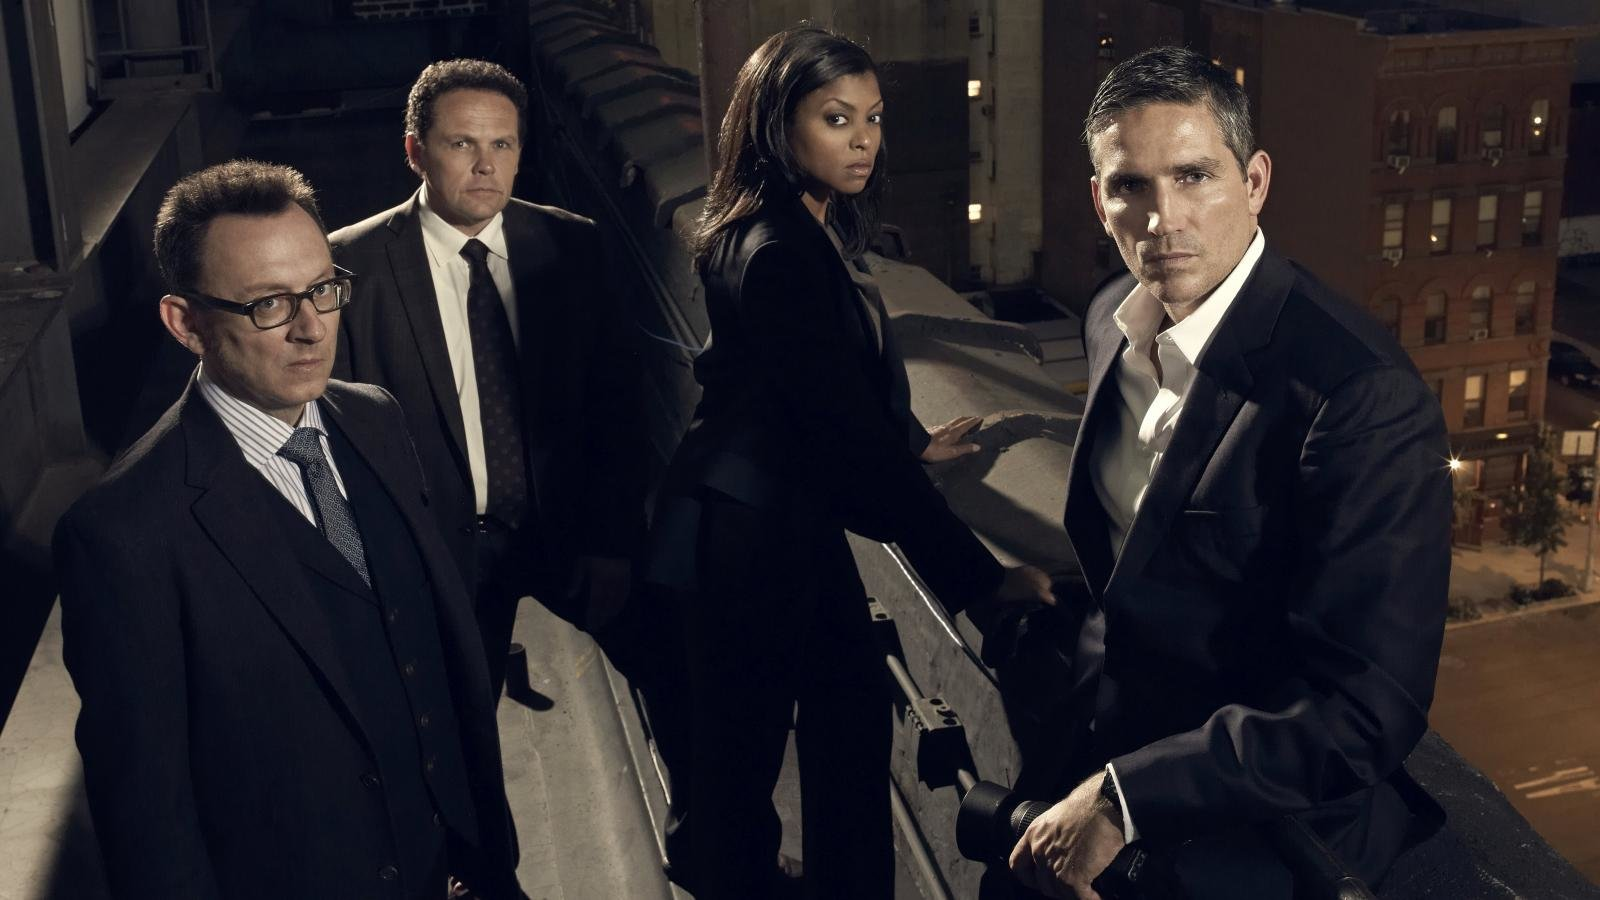 High resolution Person Of Interest (POI) hd 1600x900 wallpaper ID:458336 for desktop